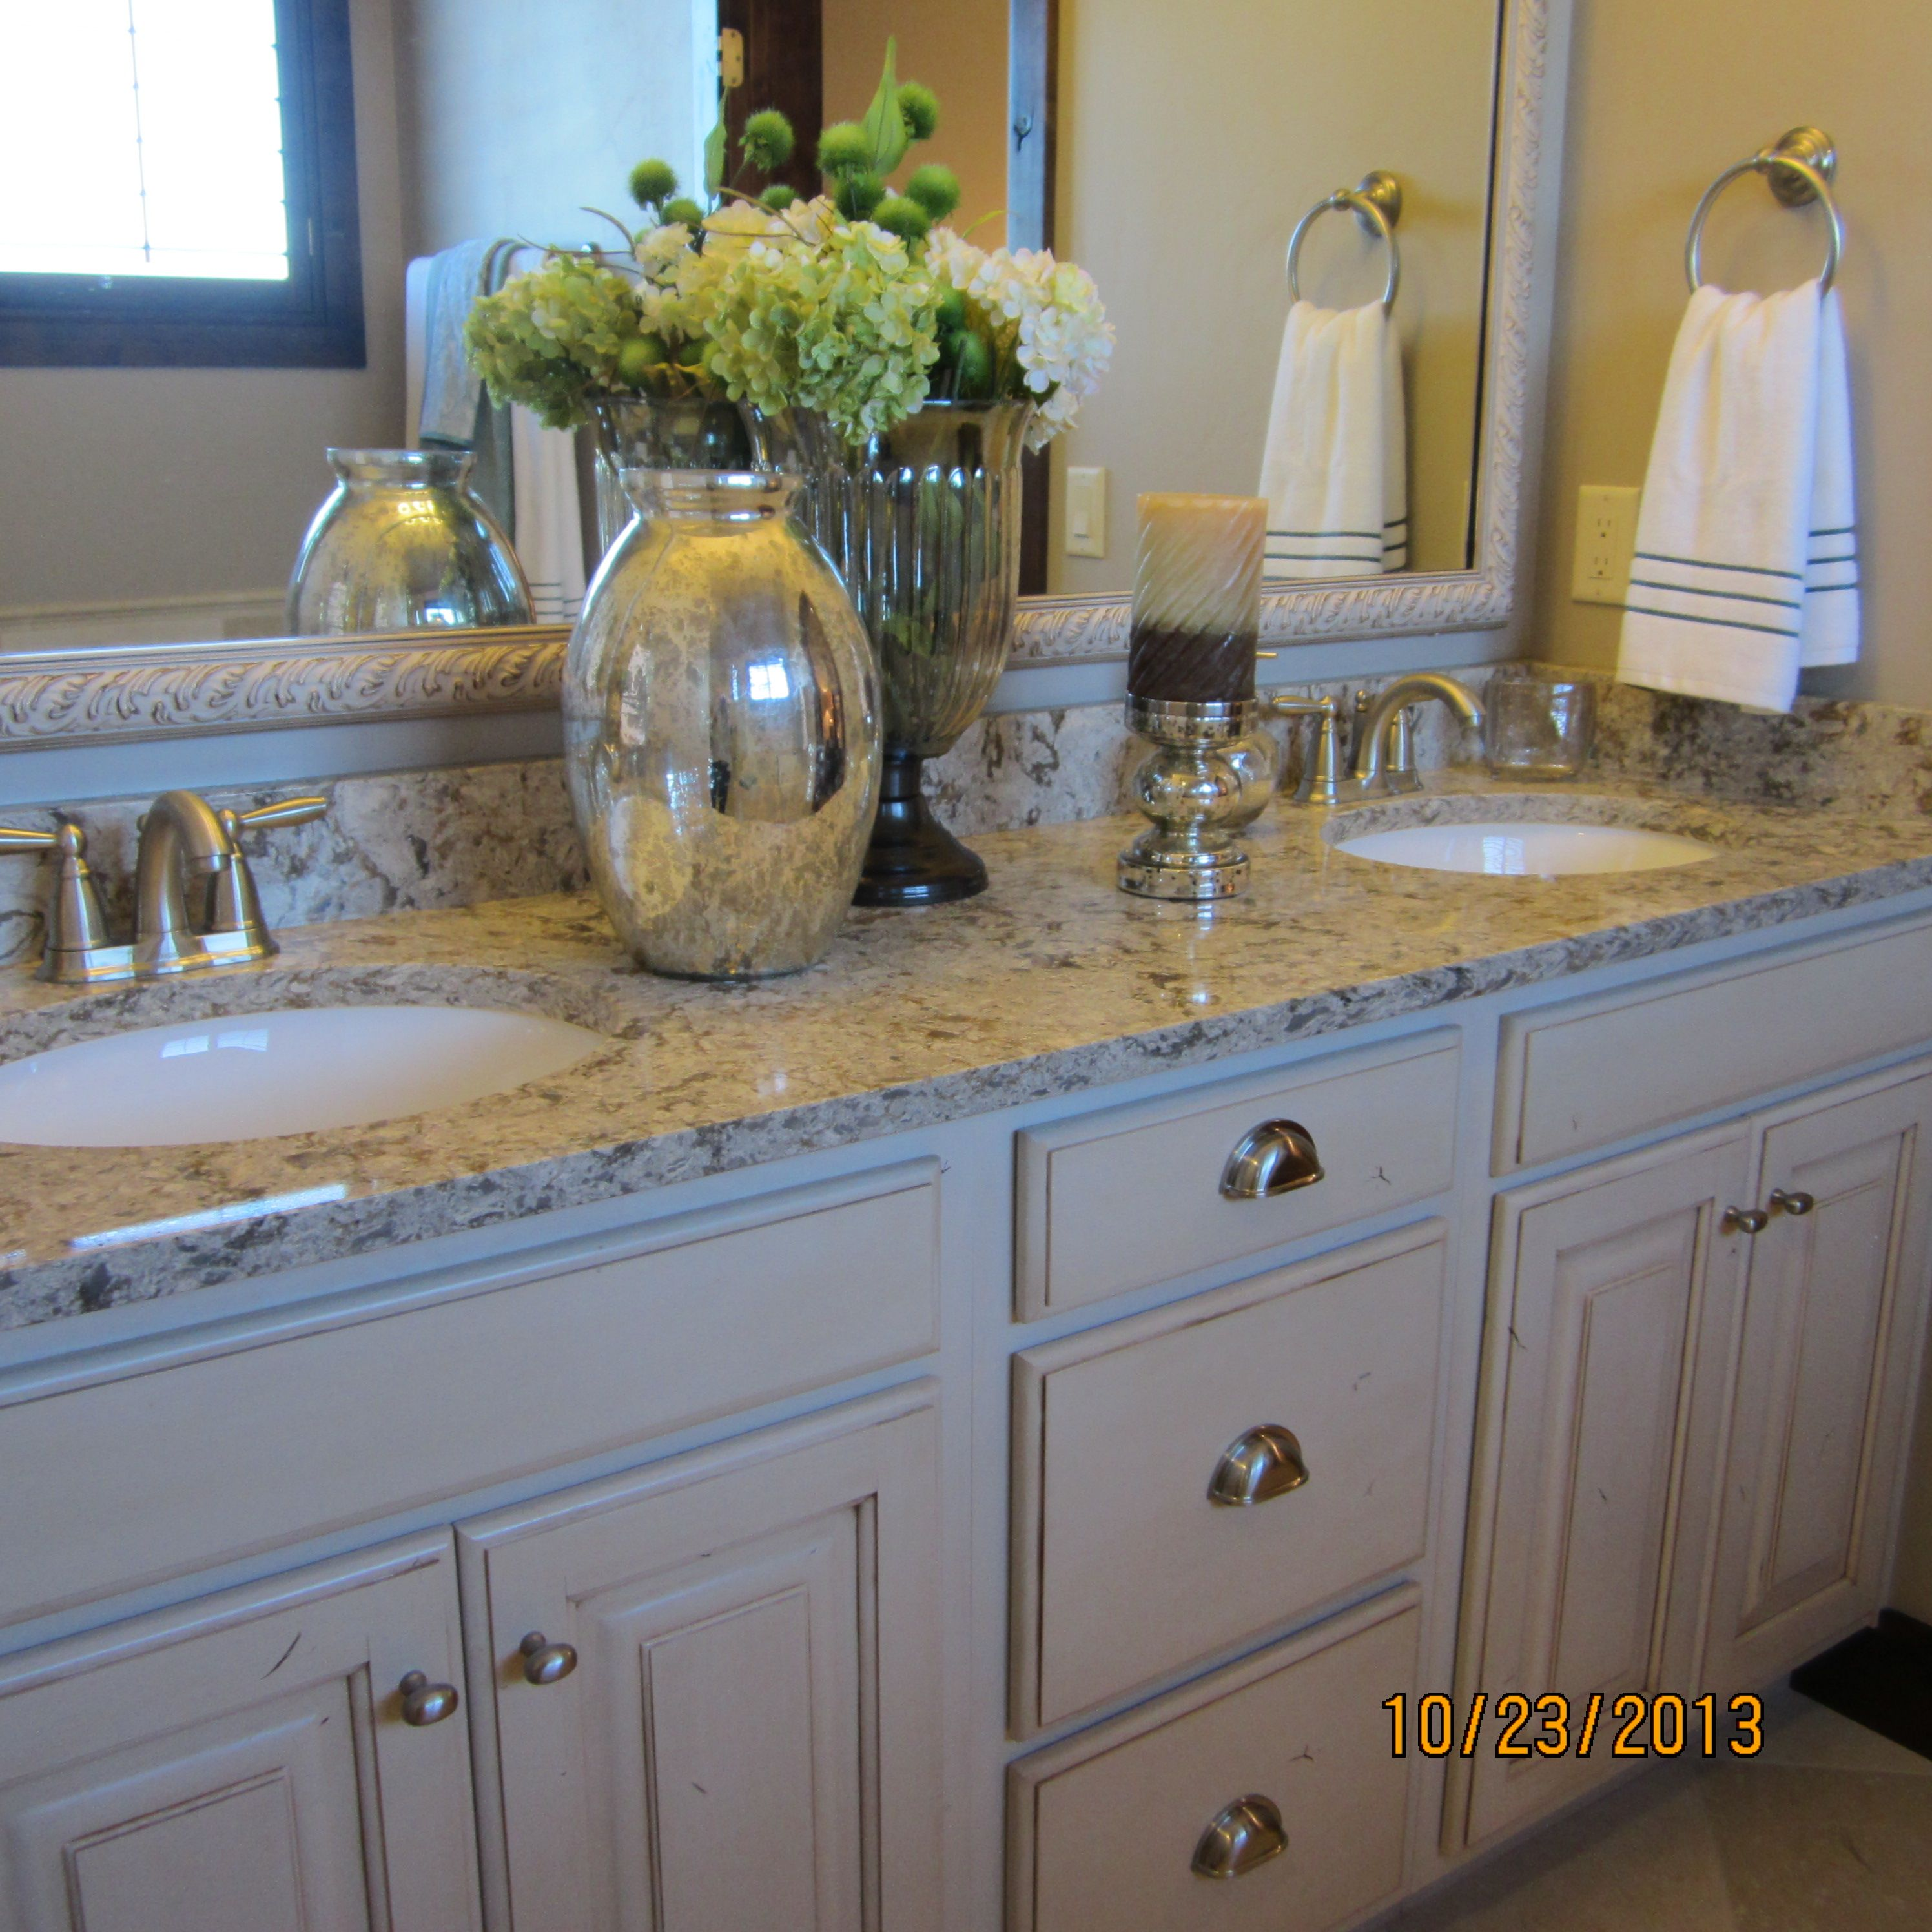 Home | Model homes, Bathroom cabinets, Home